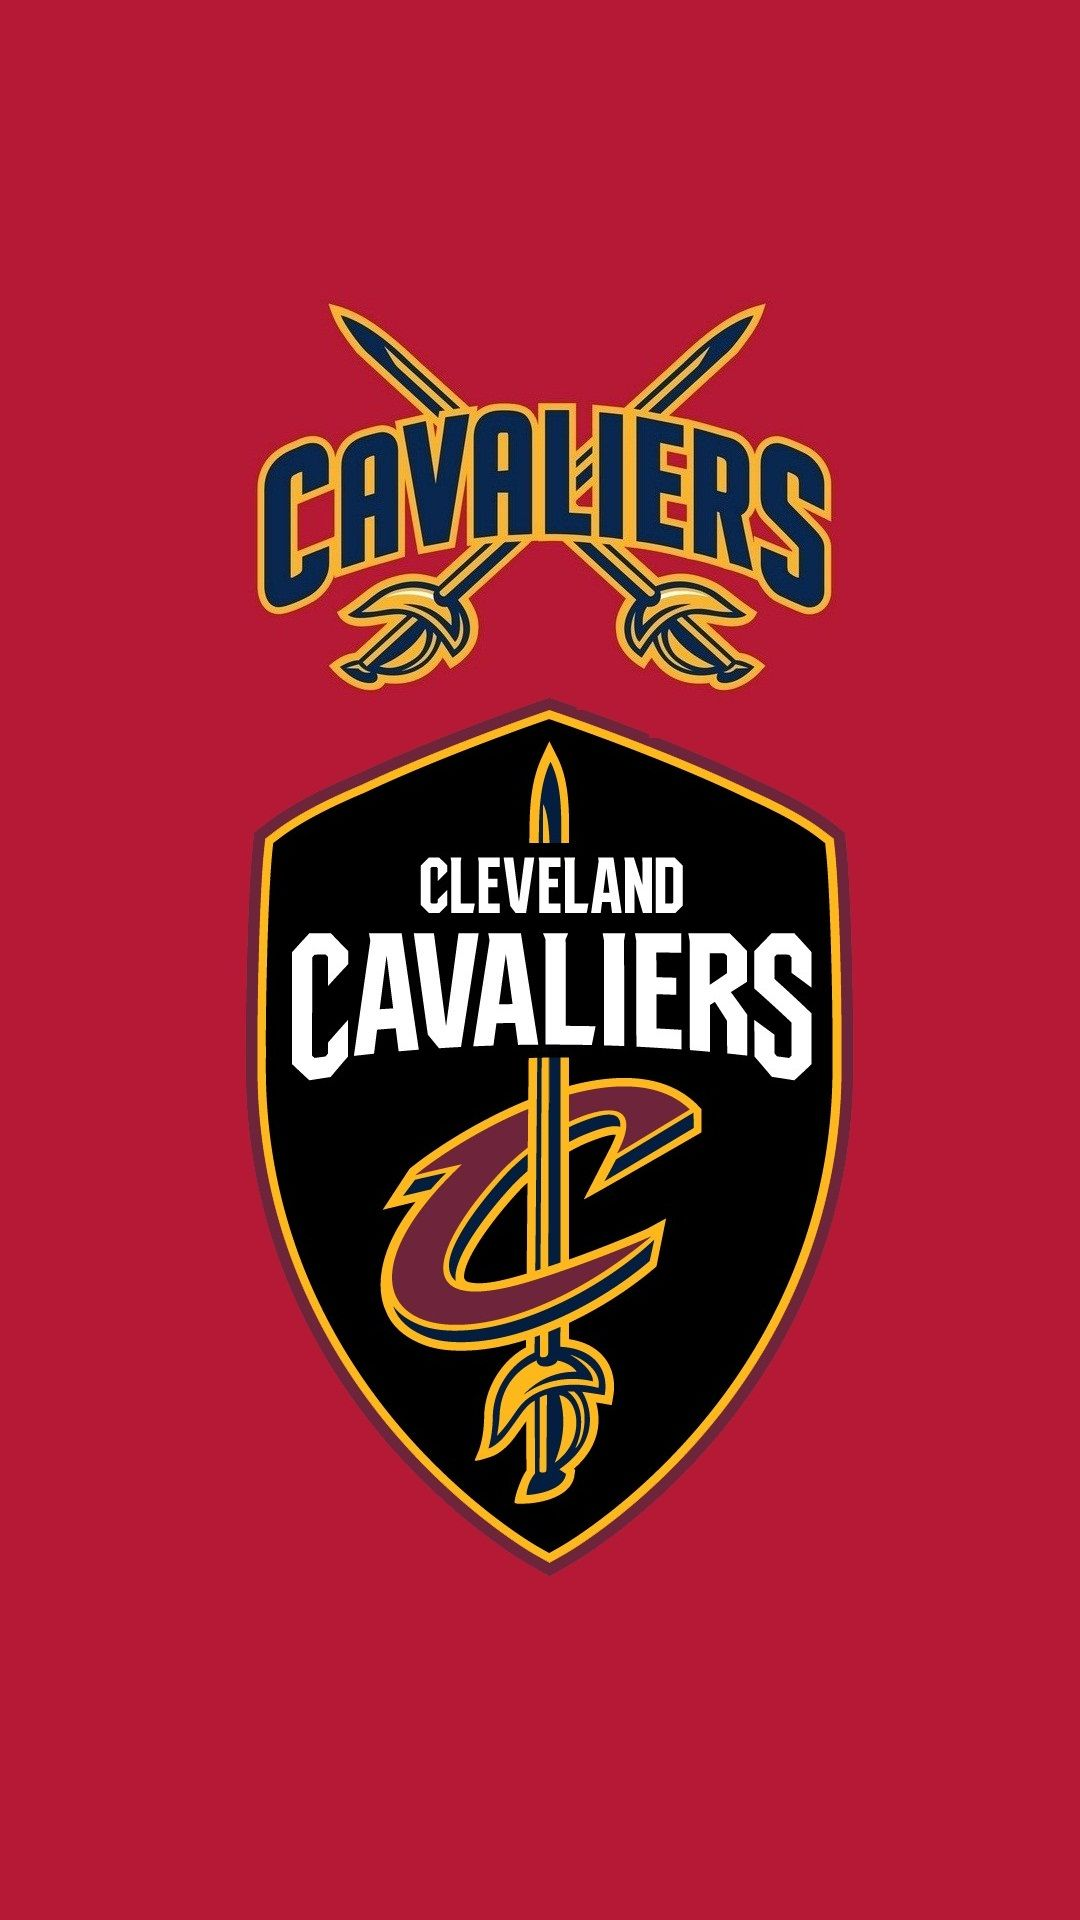 Cleveland Cavaliers iPhone 8 Wallpaper is the perfect High